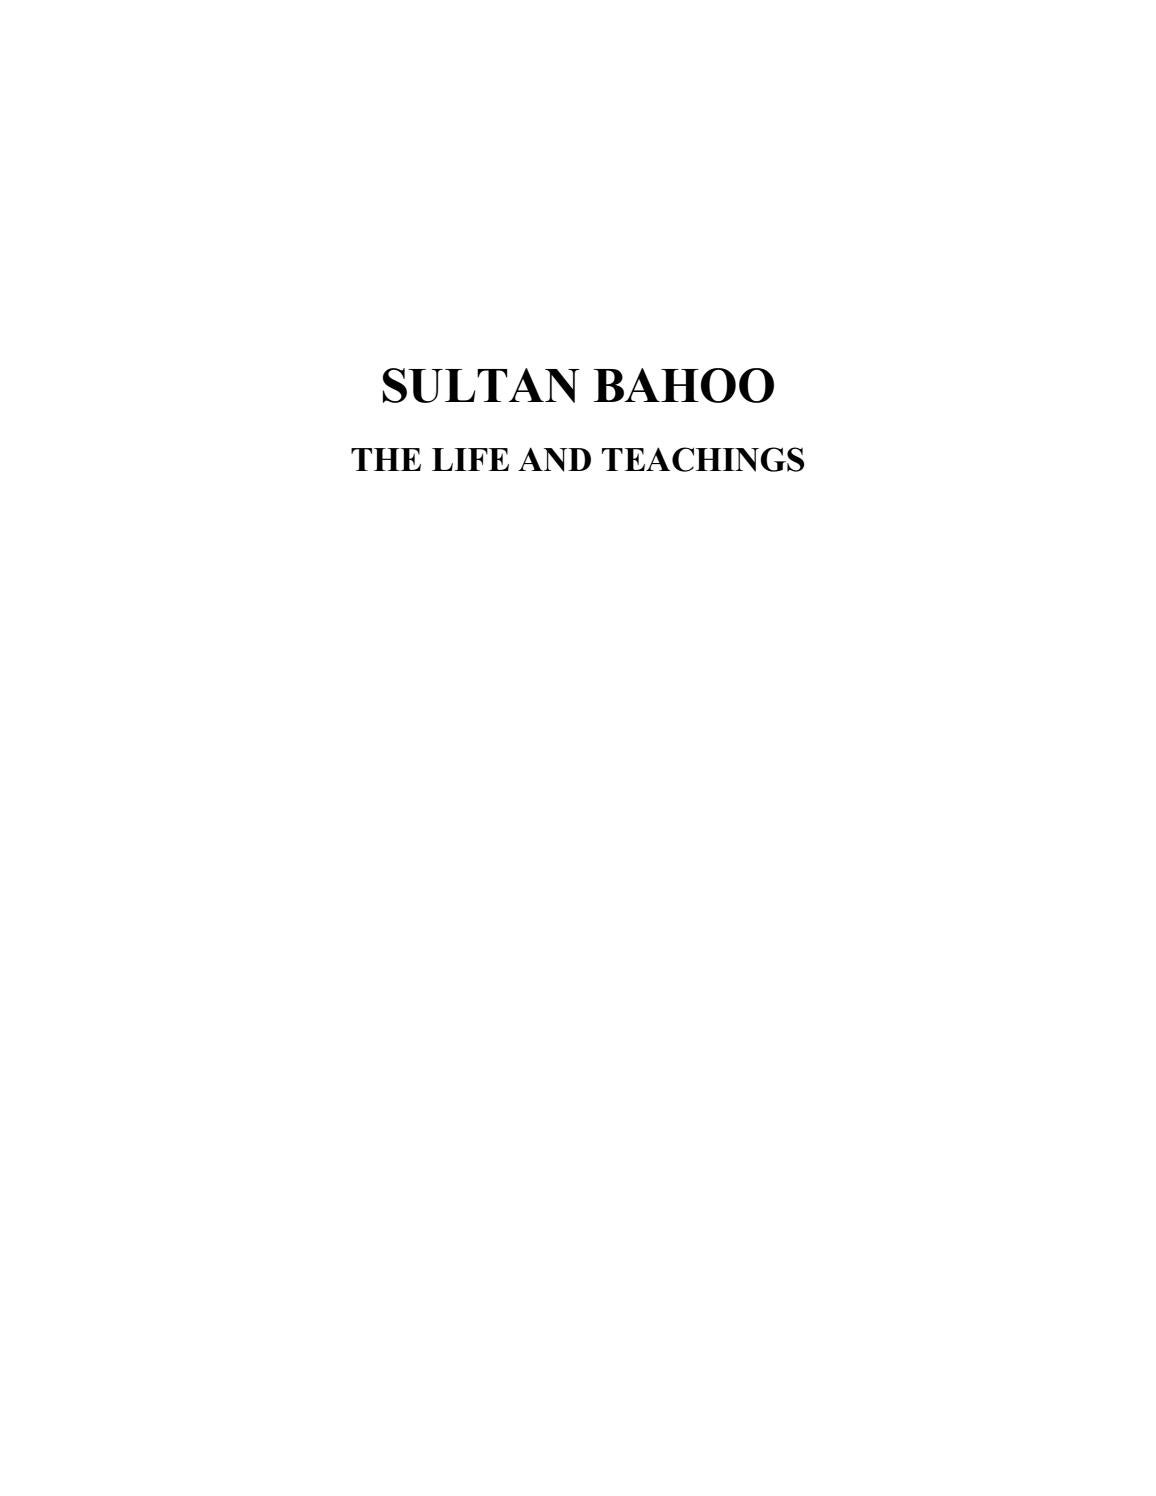 Sultan Bahoo The Life and Teachings by